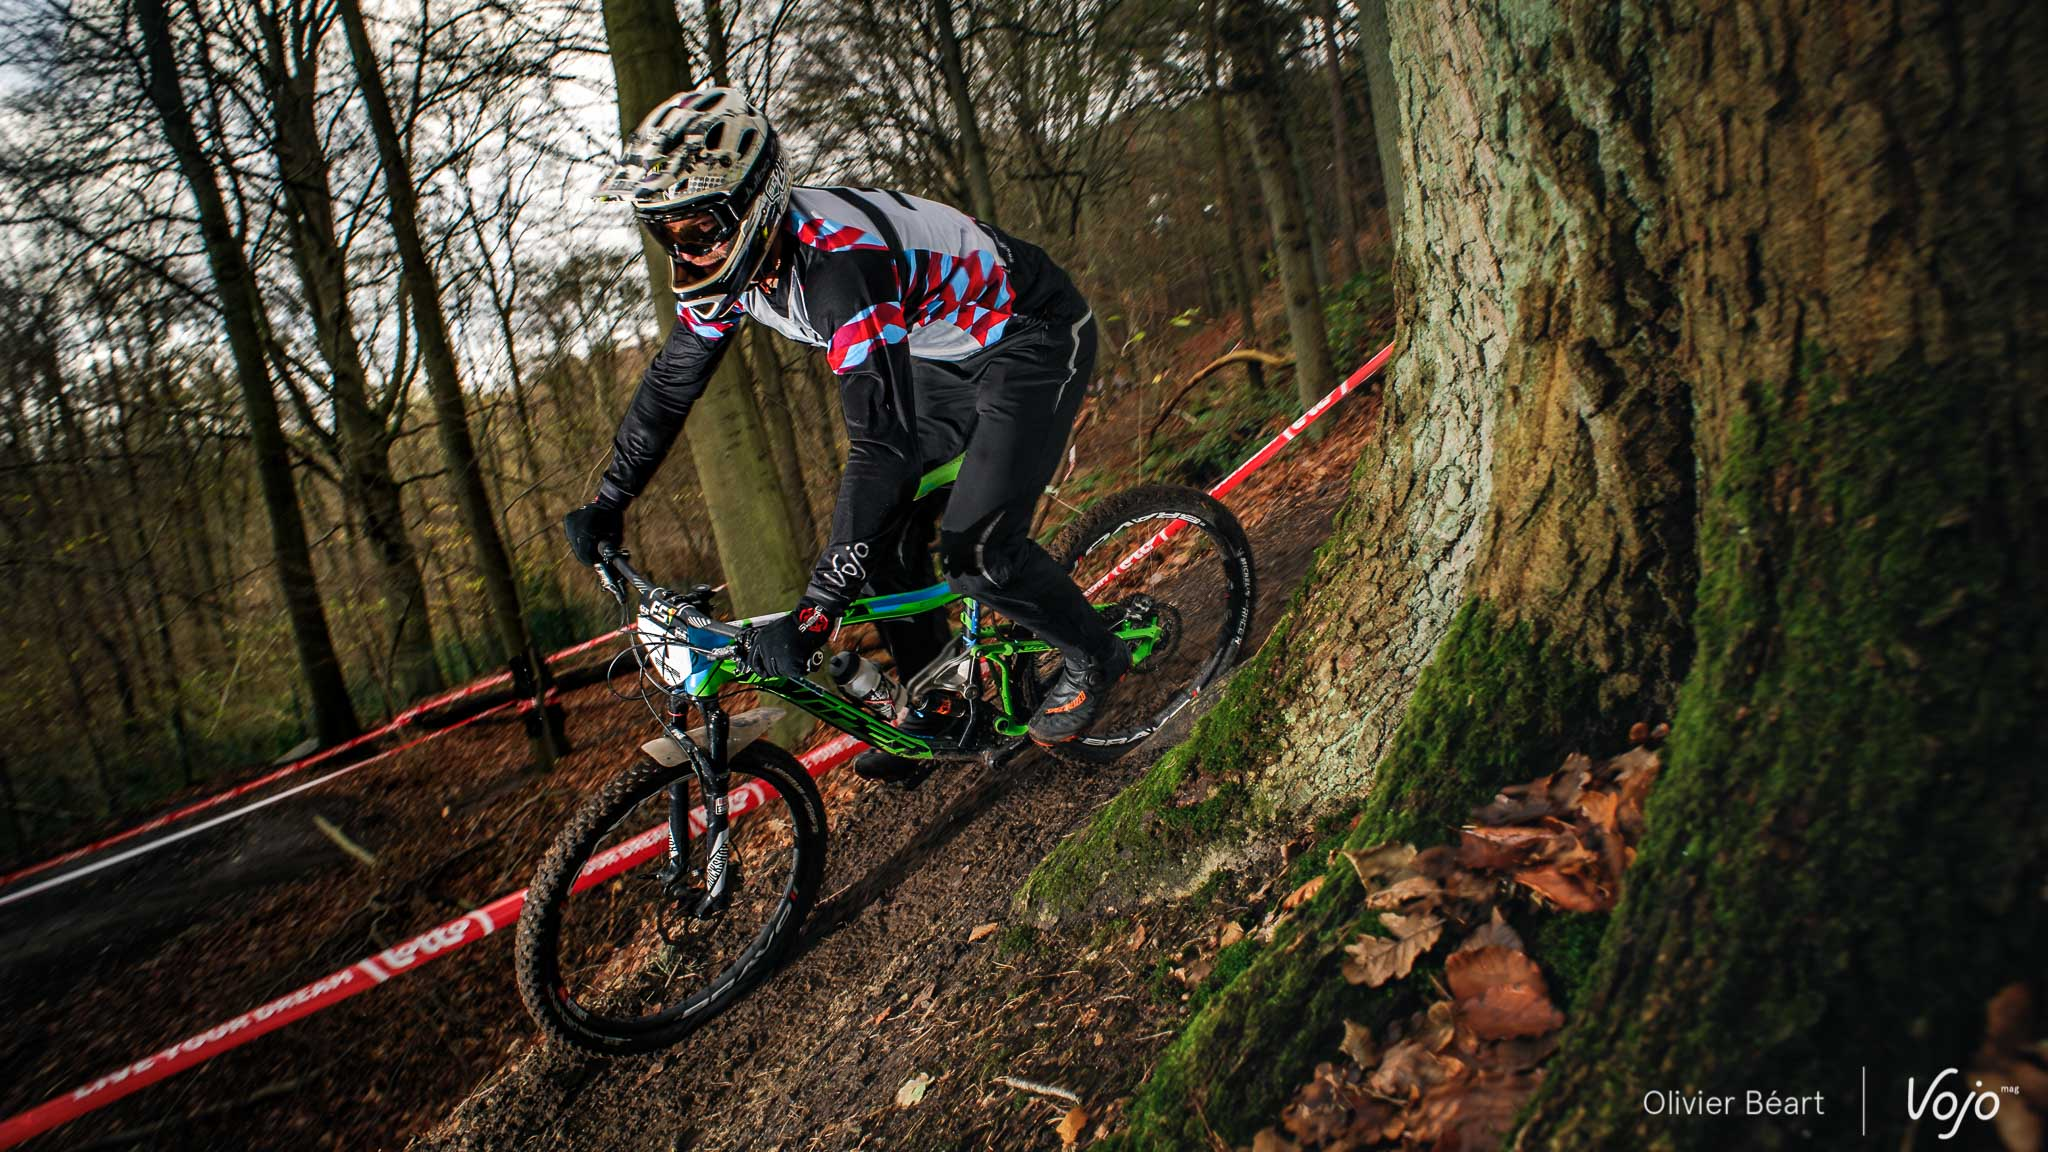 Test_Michelin_Wild_Racer_Enduro_Rear_Action_Copyright_OBeart_VojoMag-5